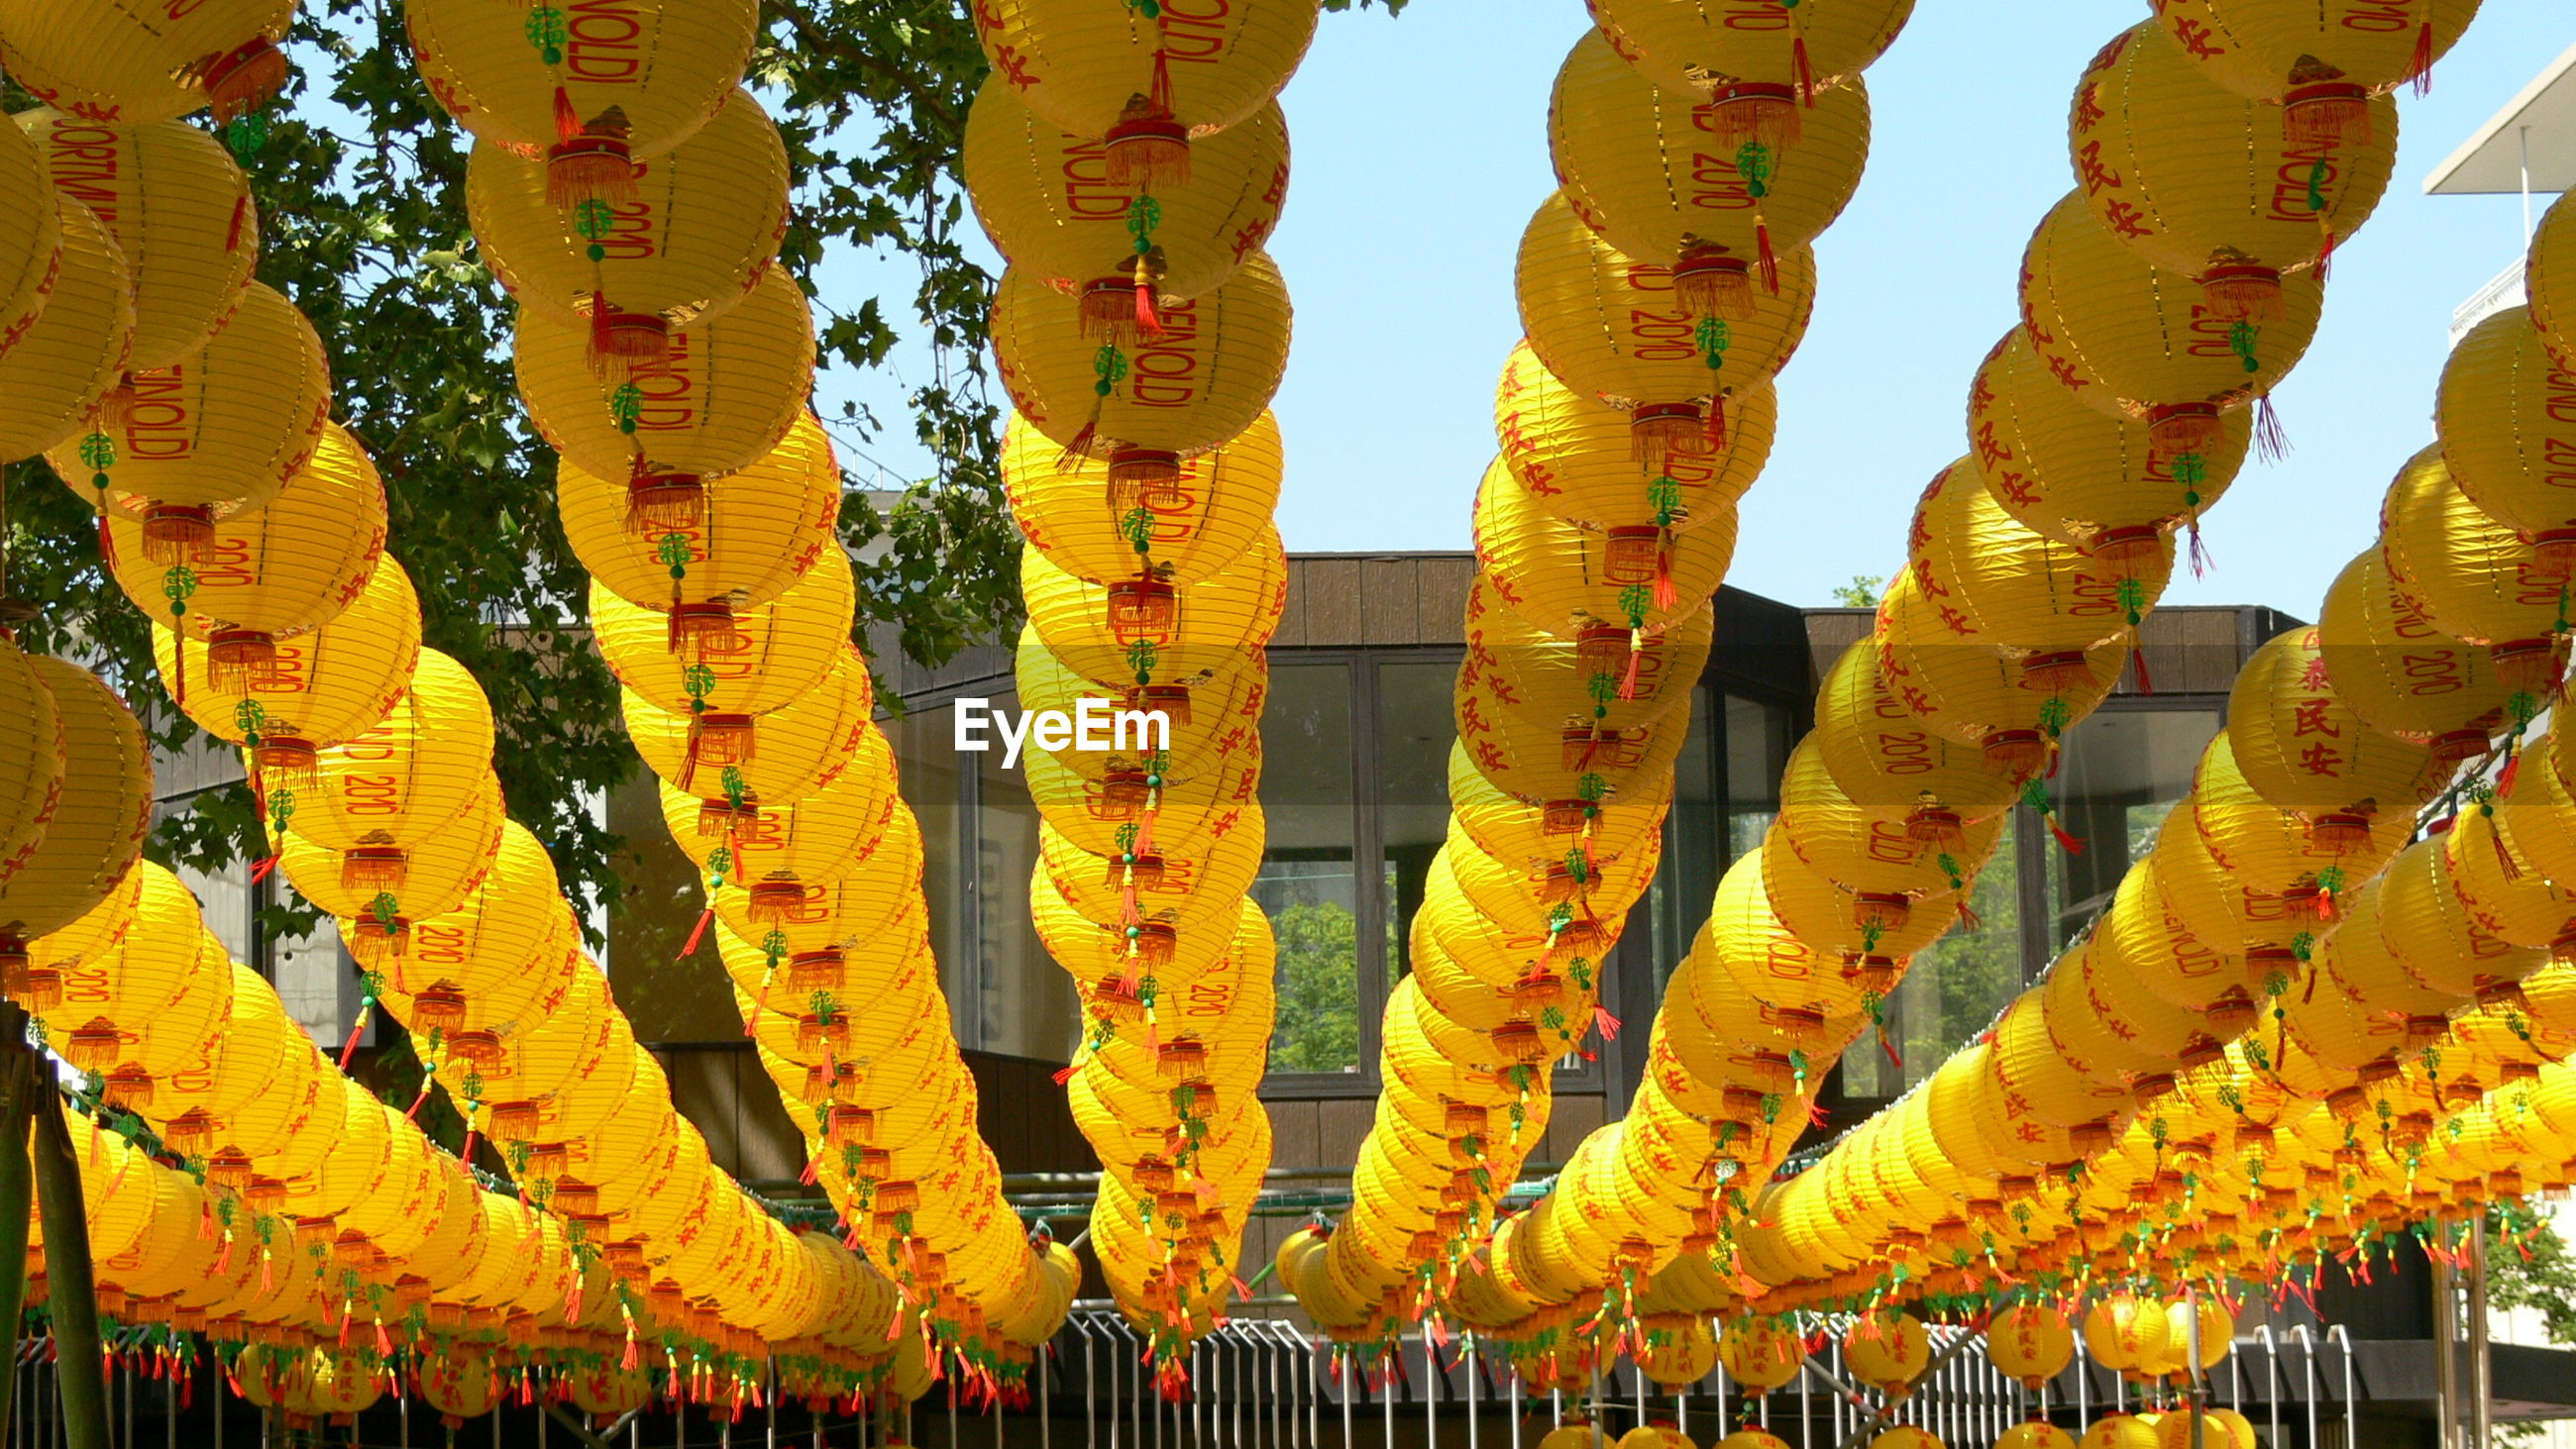 Low angle view of yellow chinese lanterns